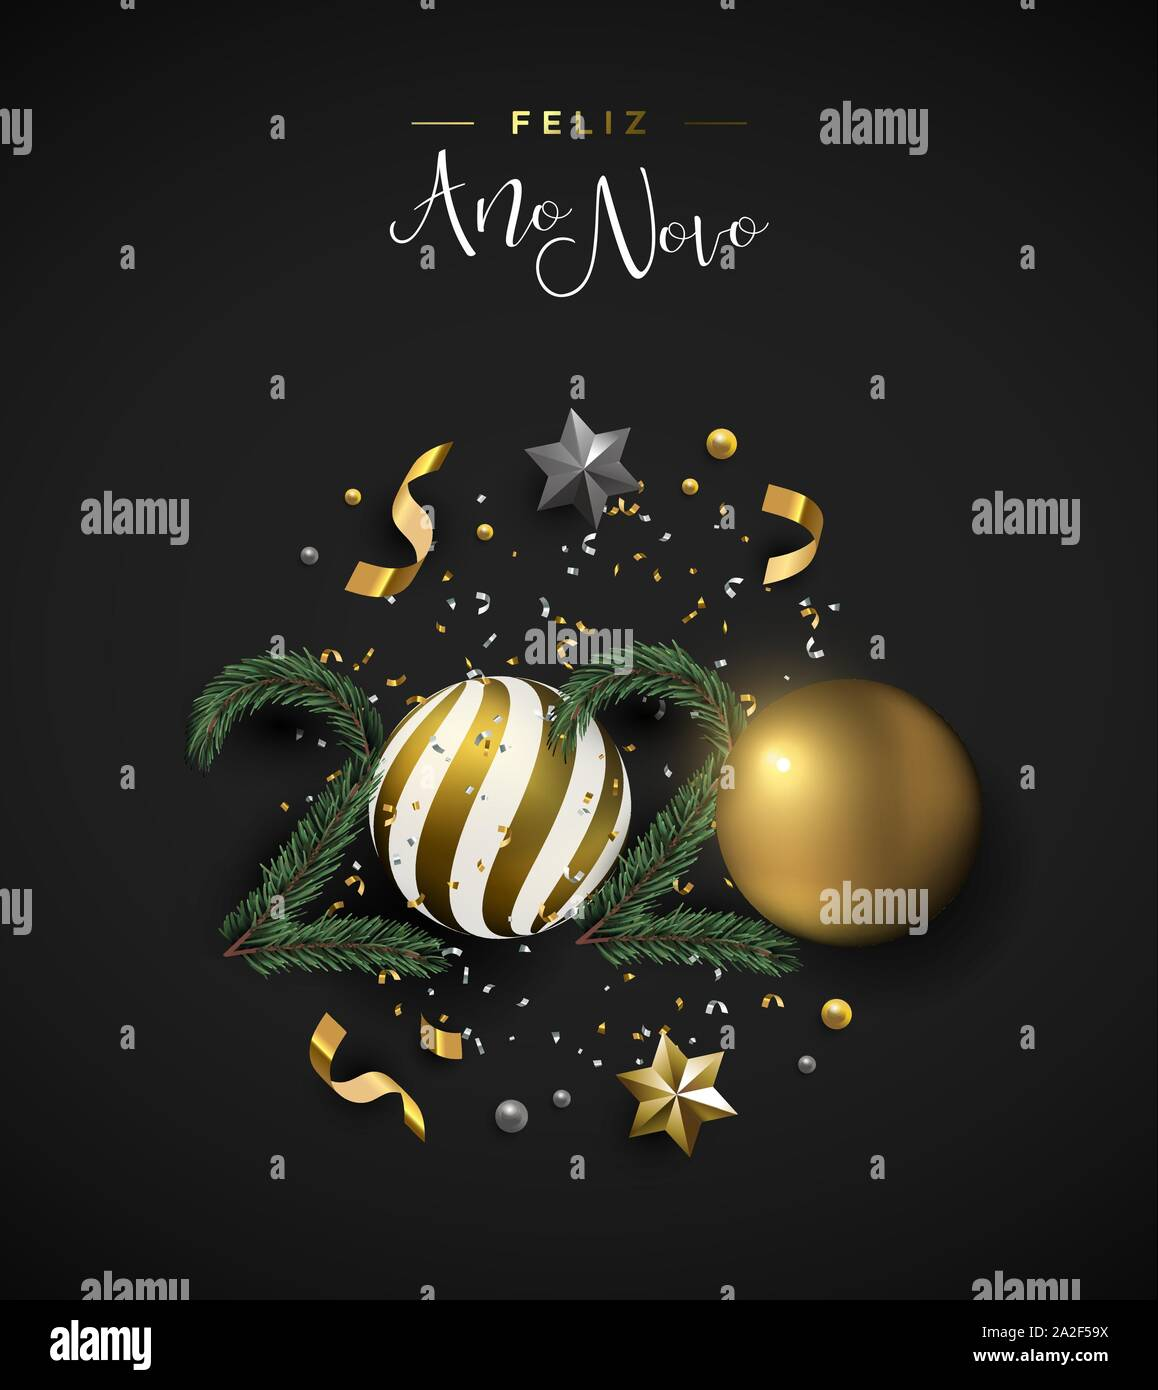 Happy New Year 2020 portuguese language greeting card of 3d holiday decoration. Realistic luxury xmas ornament layout includes gold bauble, stars and Stock Vector